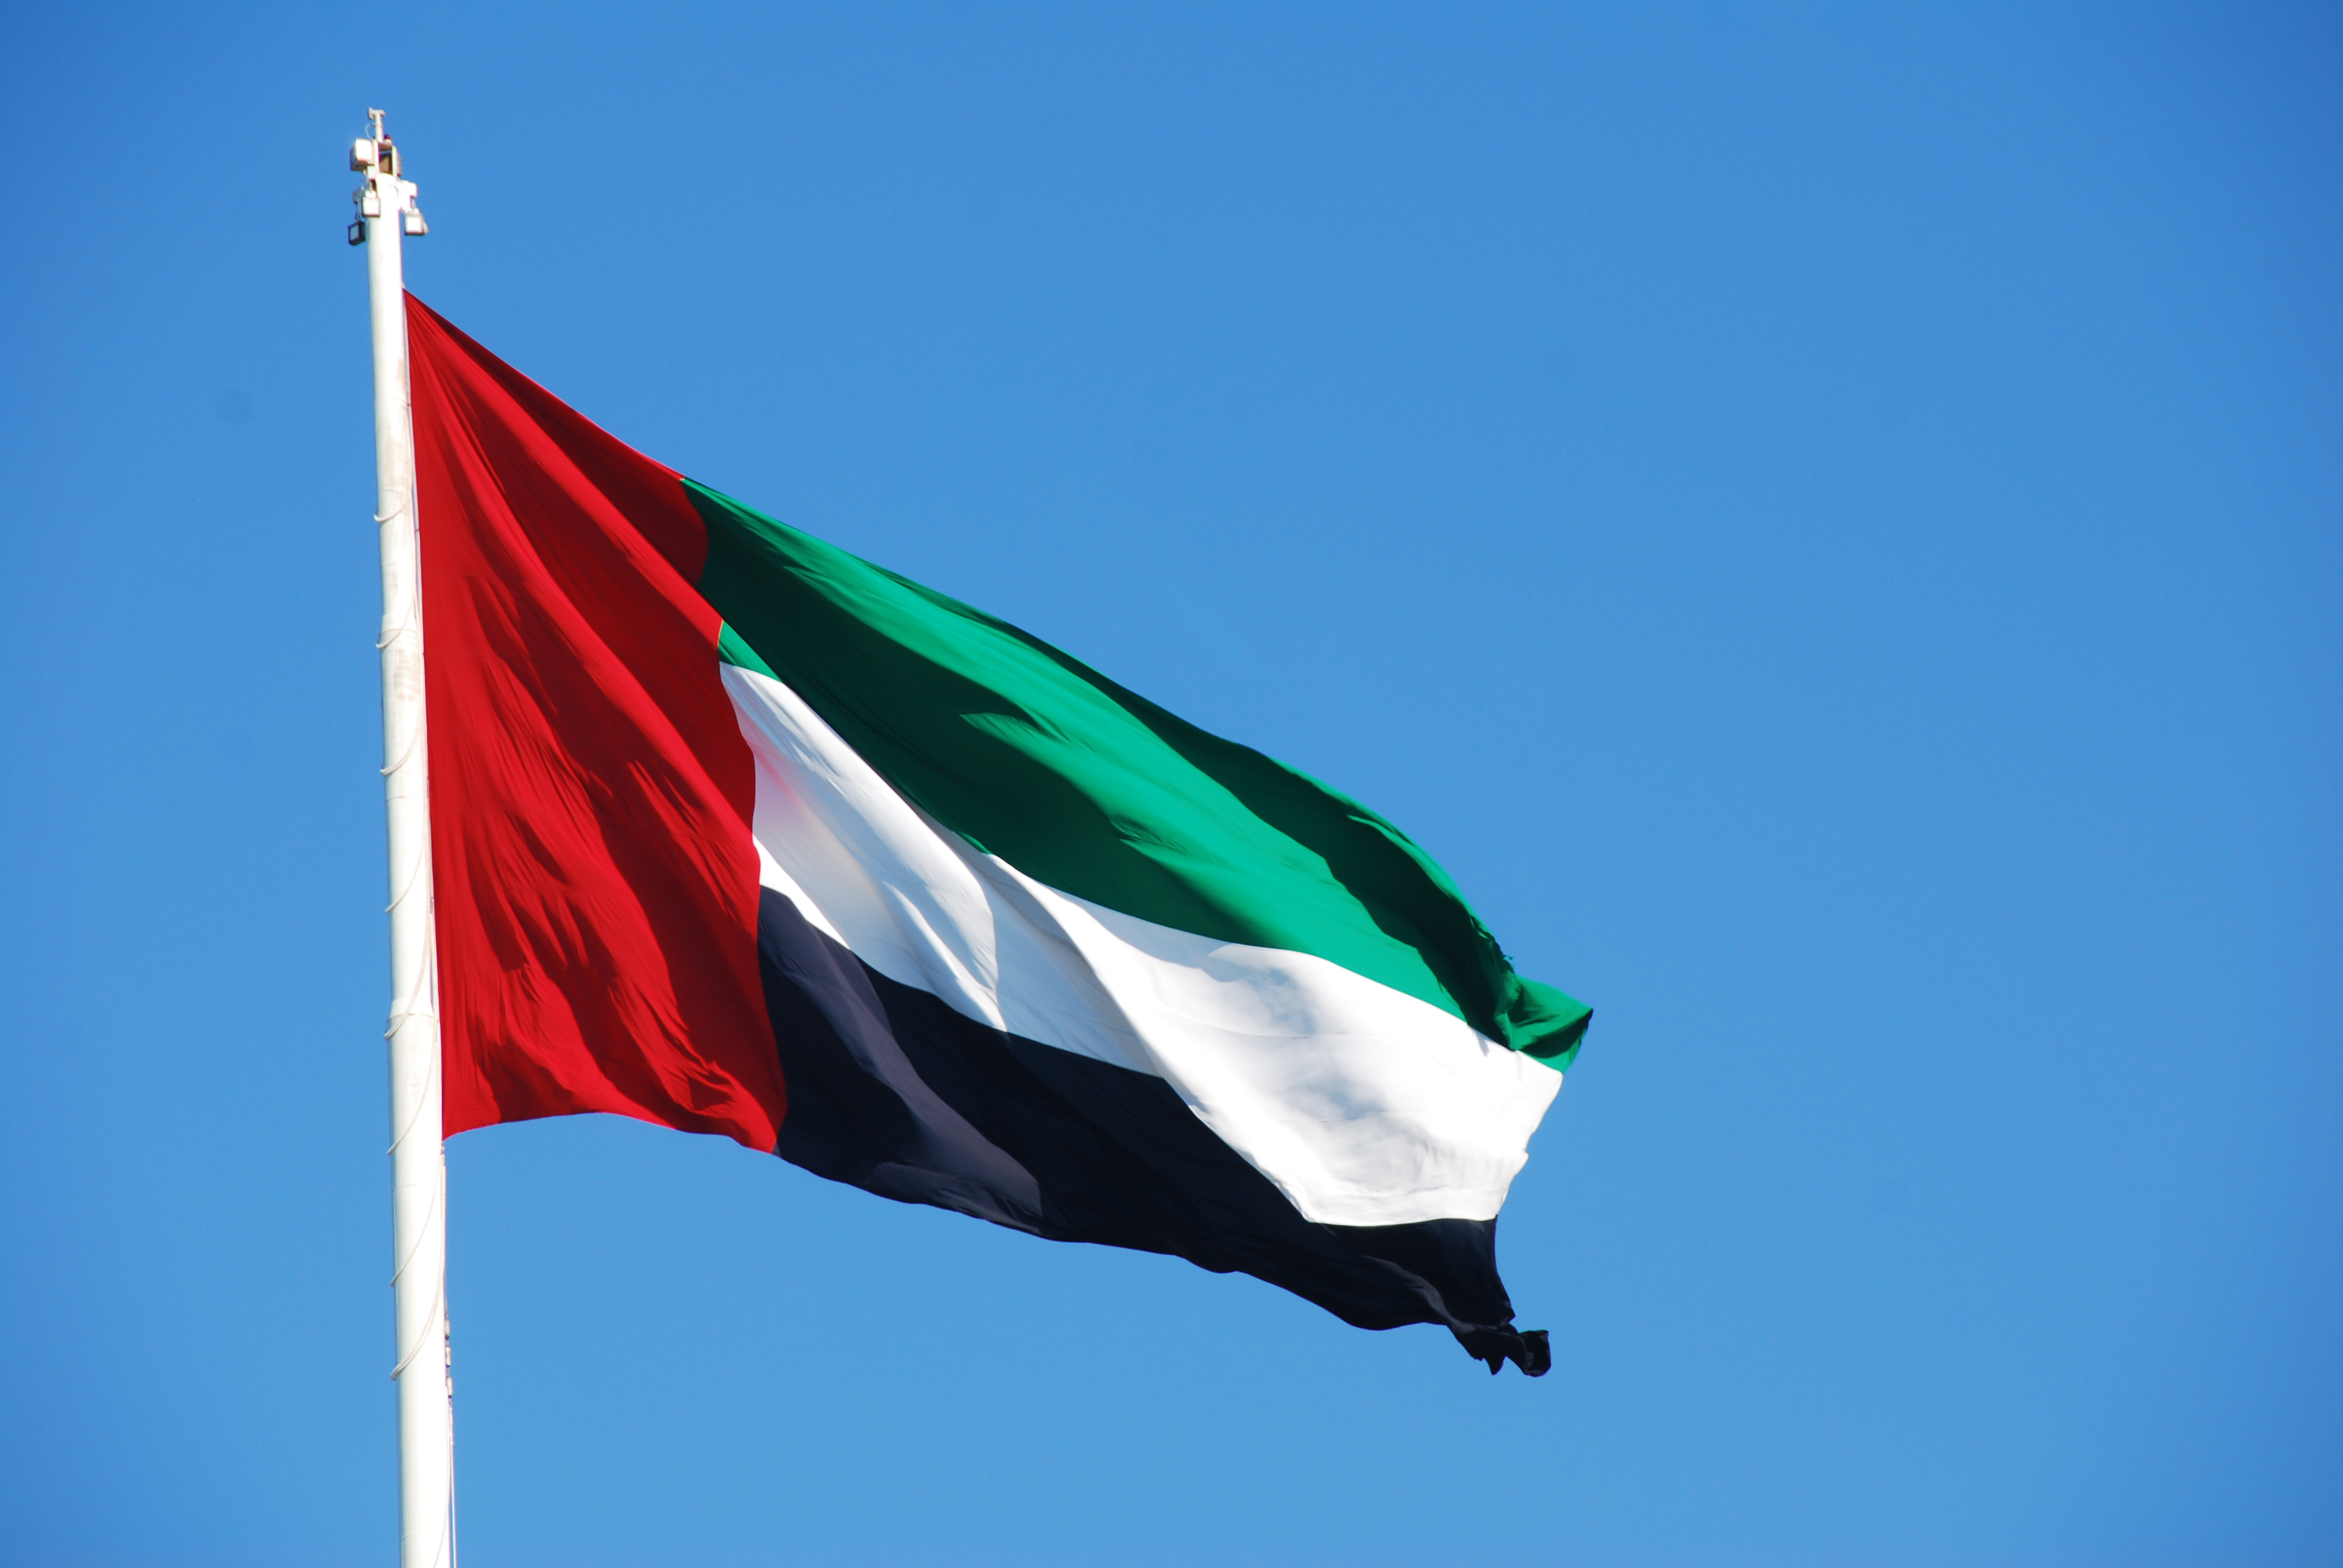 Uae convicts omani national for alleged social media insults uae convicts omani national for alleged social media insults americans for democracy human rights in bahrain biocorpaavc Images